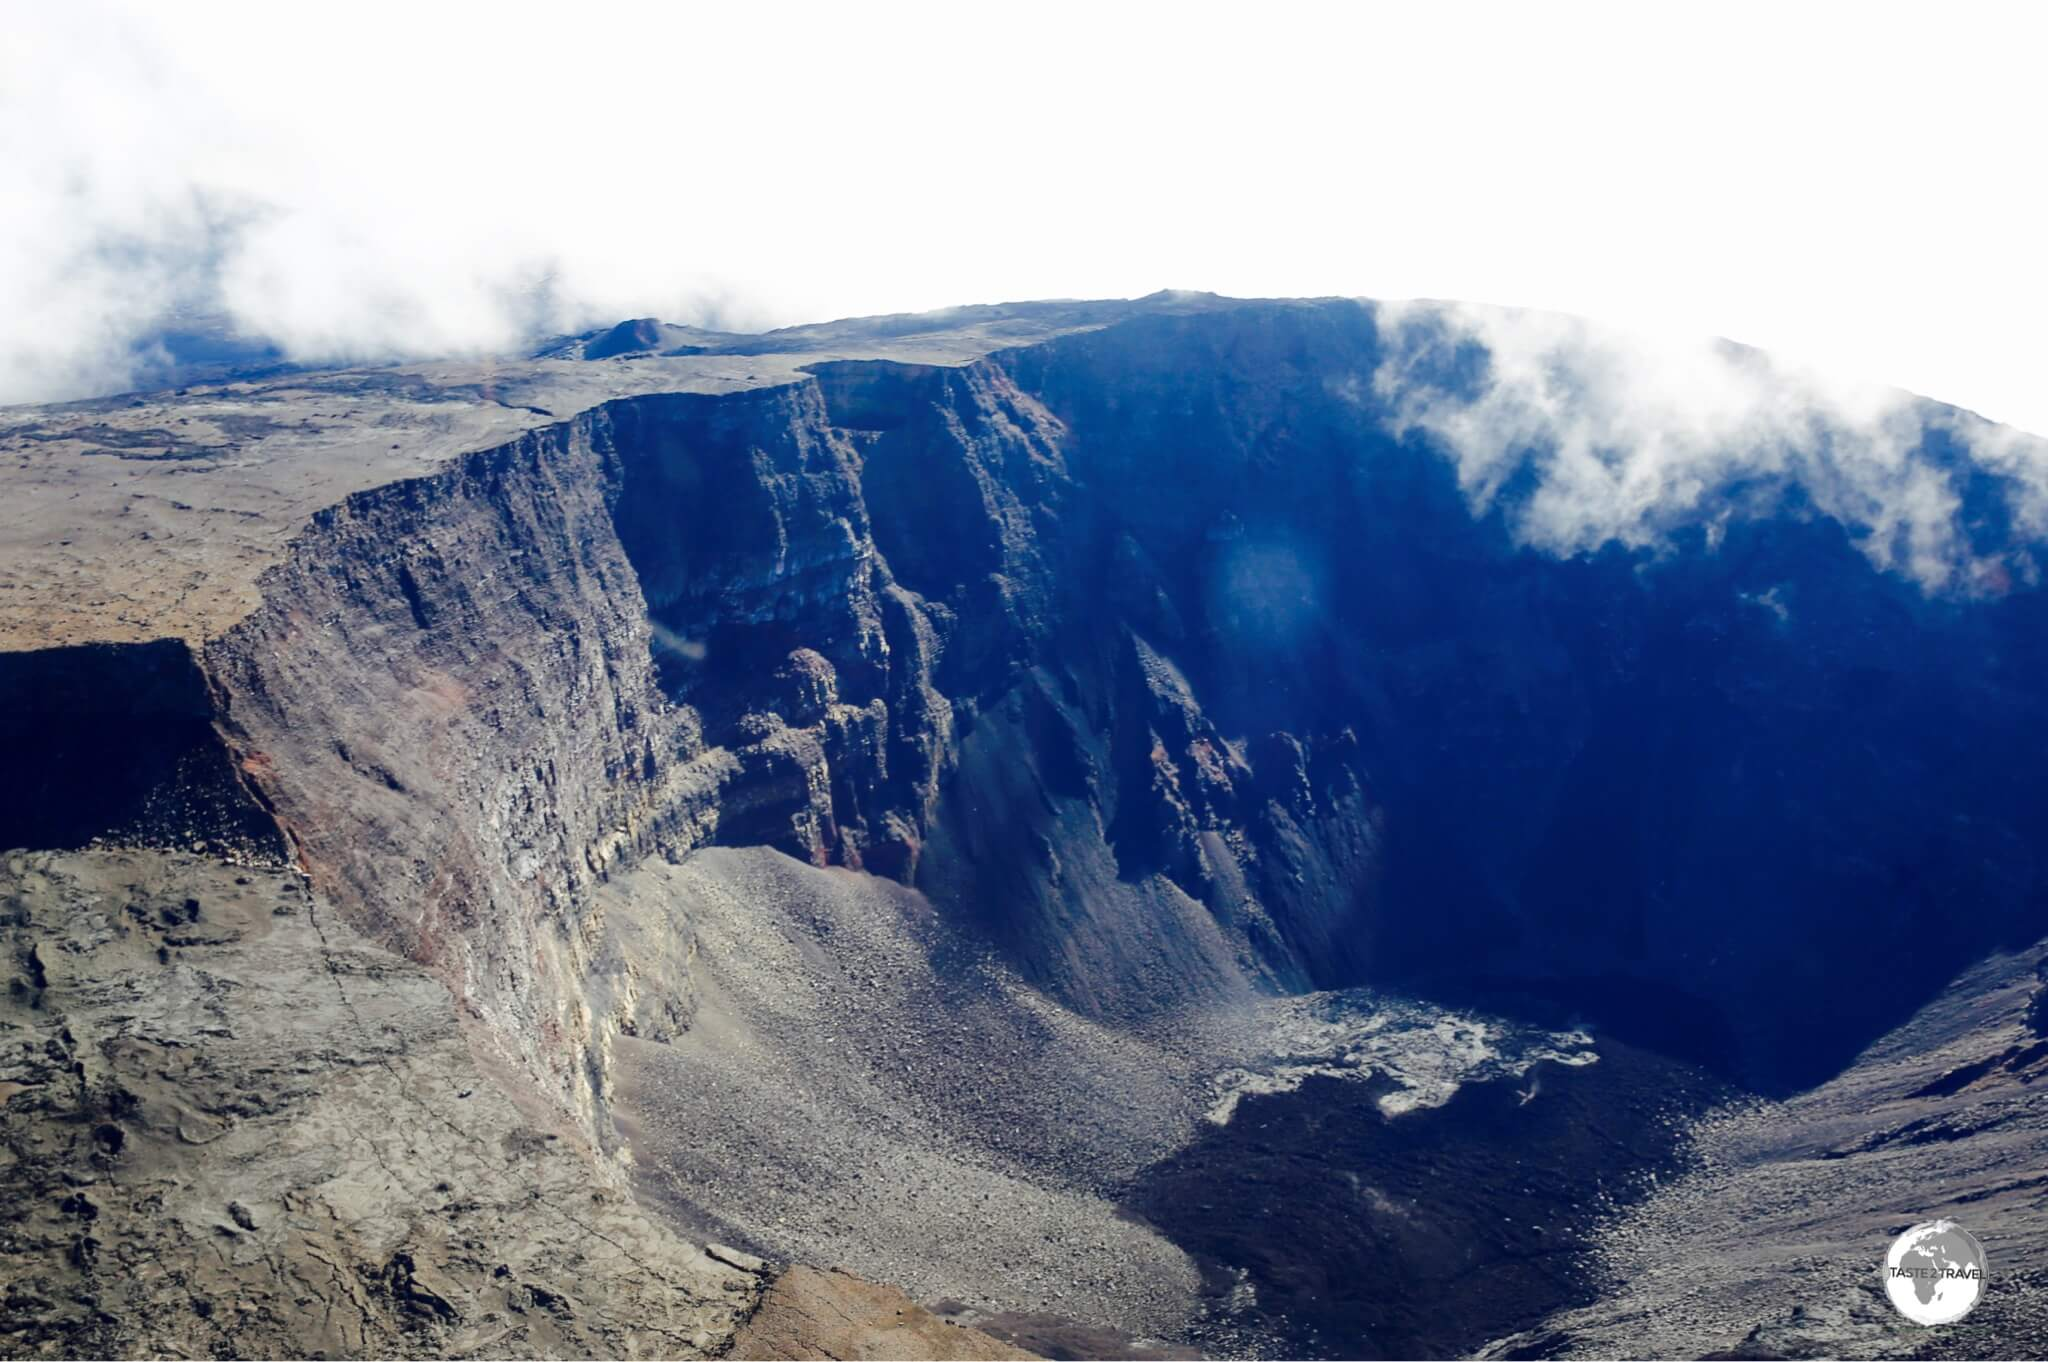 A panoramic view of the Piton de la Fournaise volcano from my Corail helicopter flight.